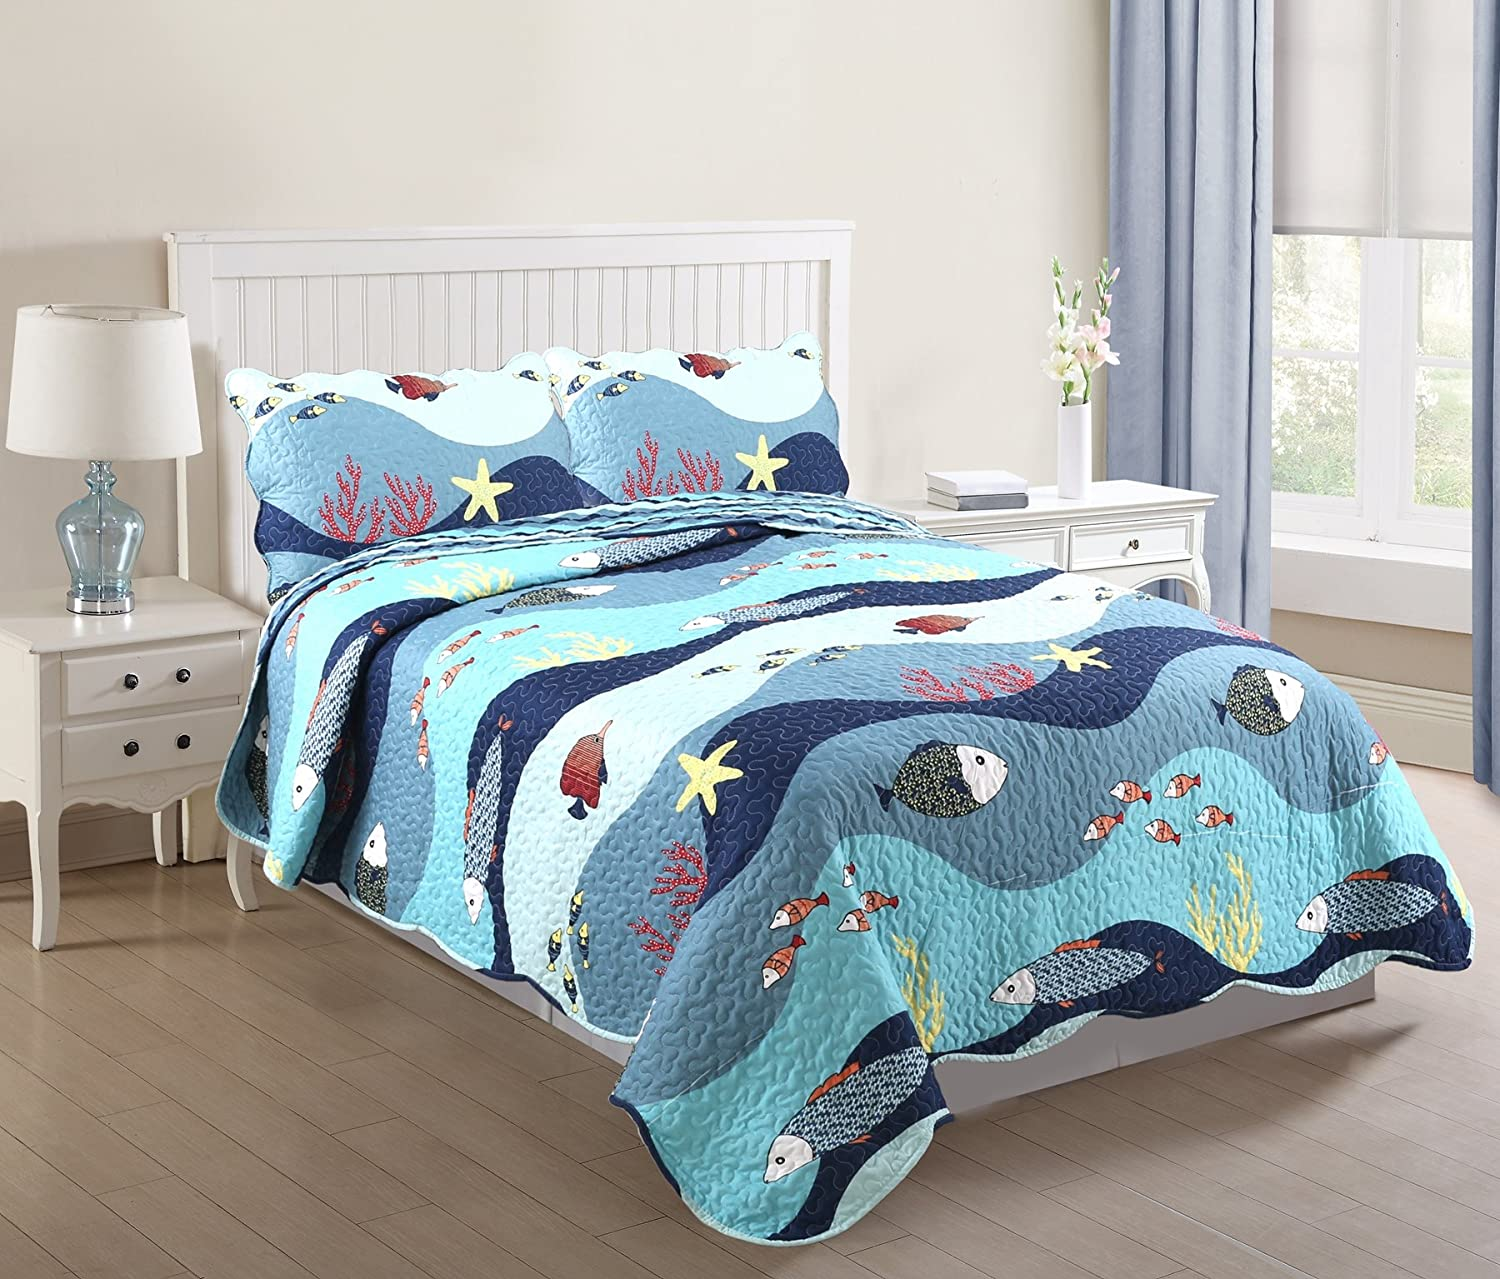 MarCielo 3 Piece Kids Bedspread Quilts Set Throw Blanket for Teens Boys Girls Bed Printed Bedding Coverlet, Full Size, Ocean Fish (Full